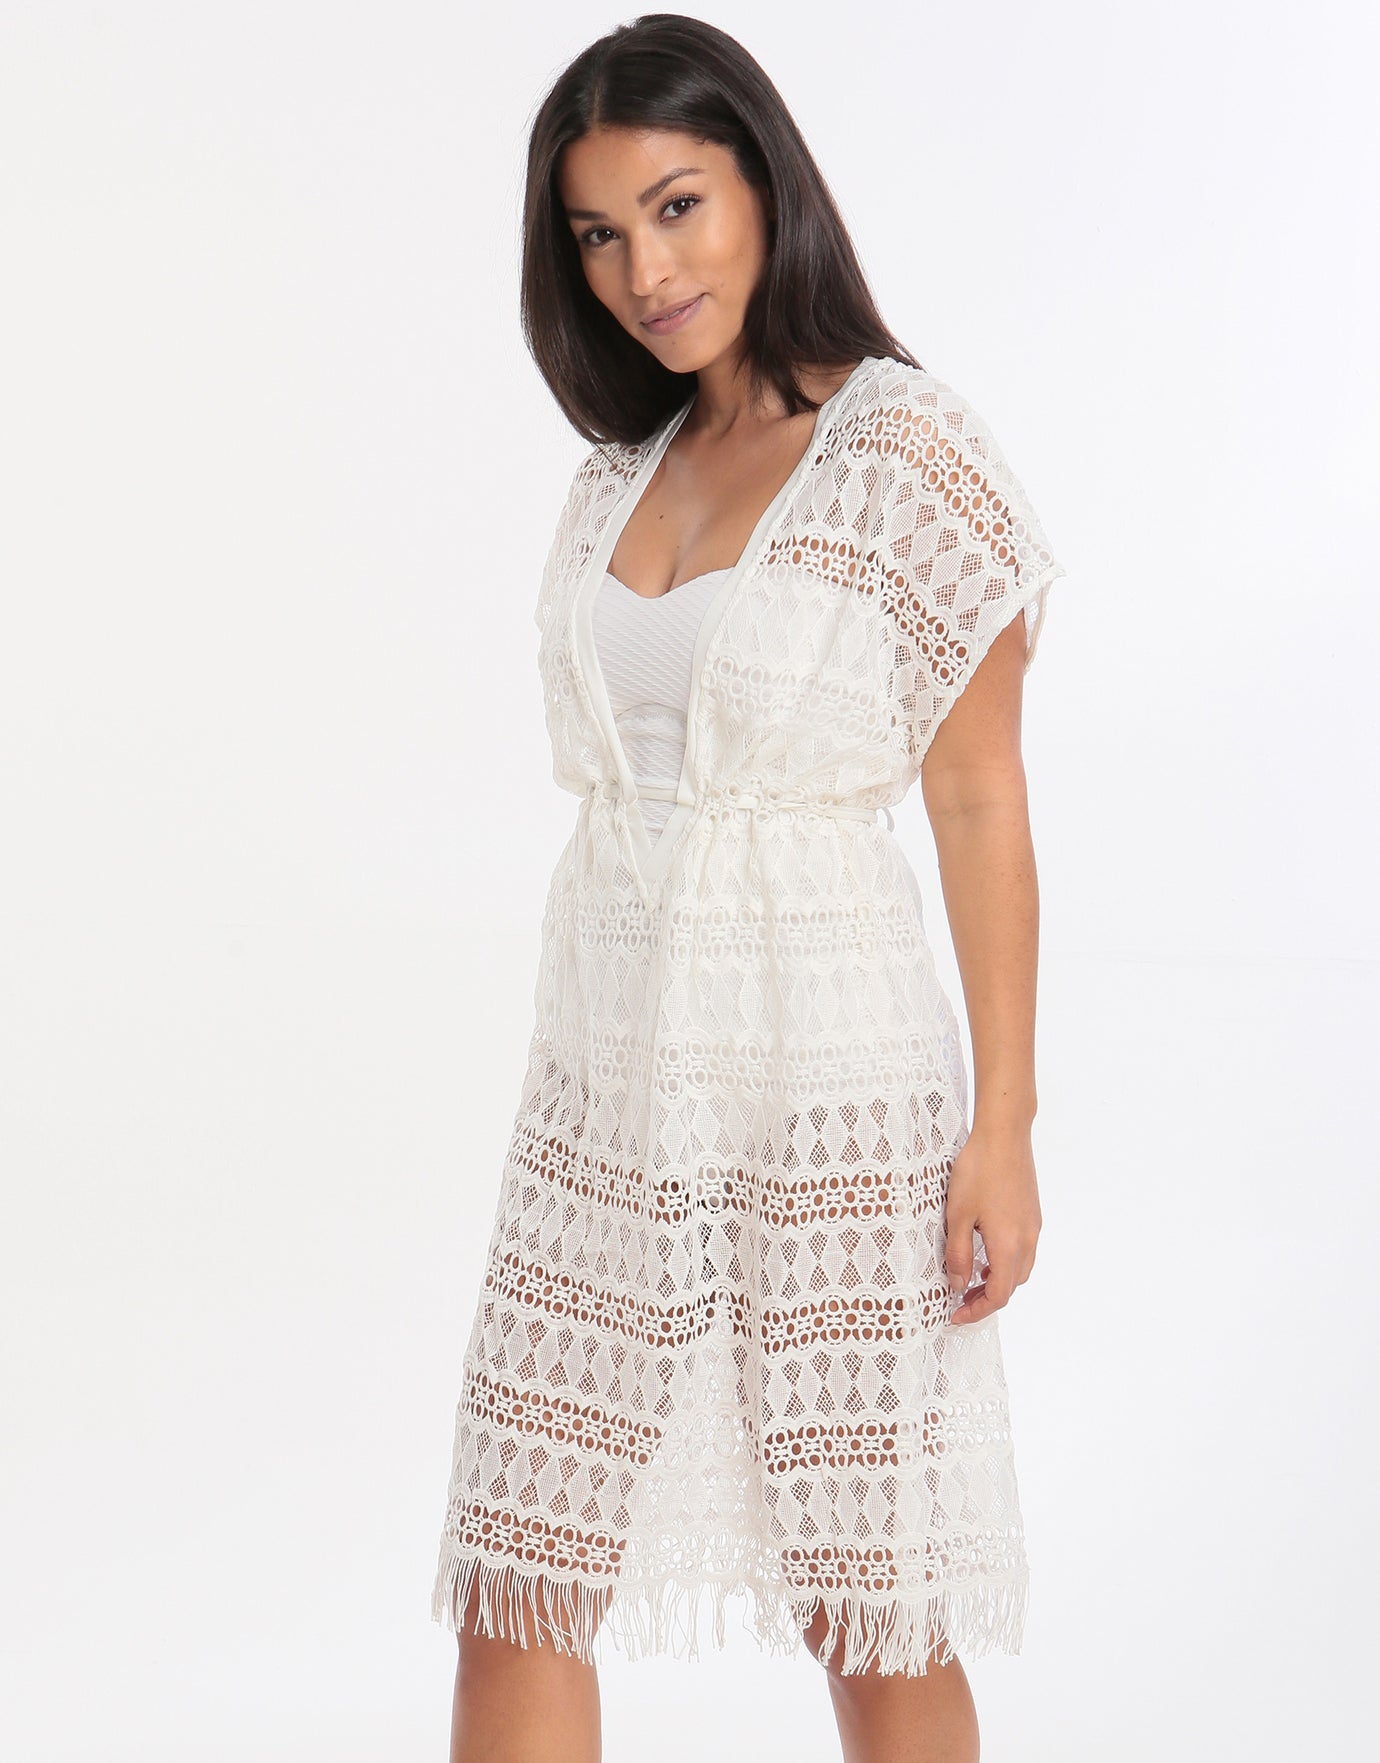 1def7d3be6 Gottex Profile Tutti Frutti Crochet Dress - White | Simply Beach UK